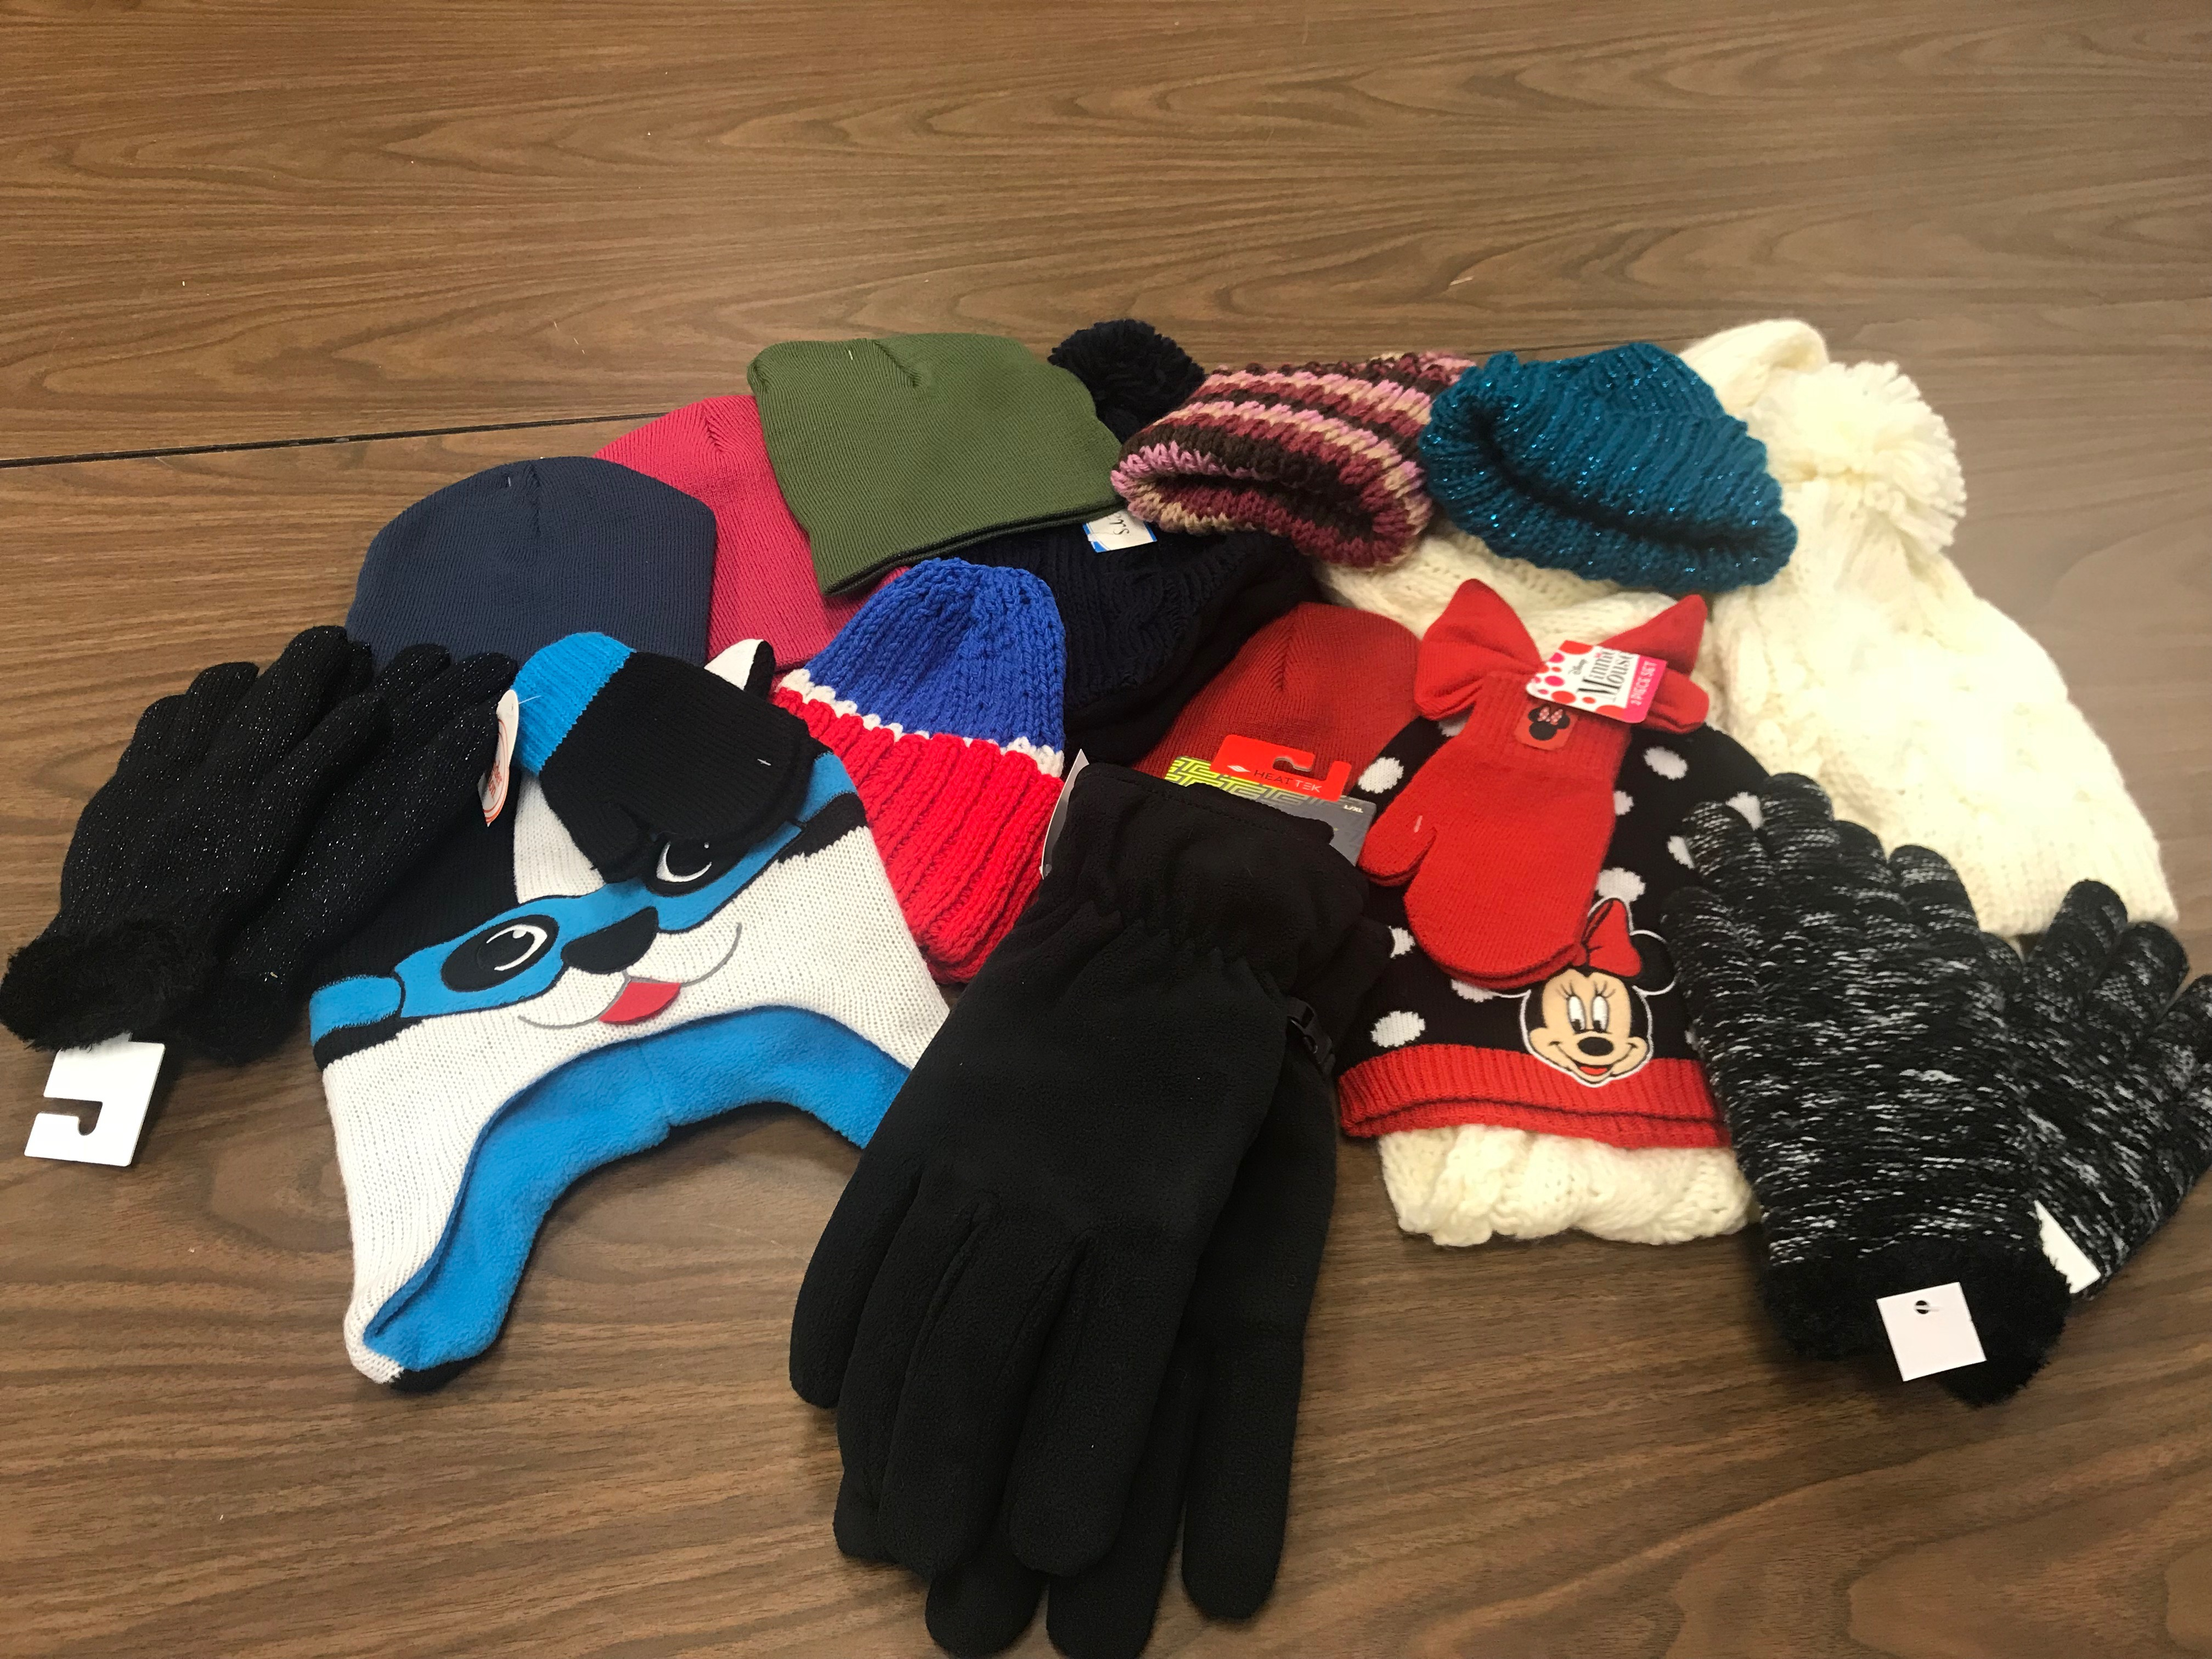 2018-12-10 - First United Methodist Church of Wayne donation of hats and gloves